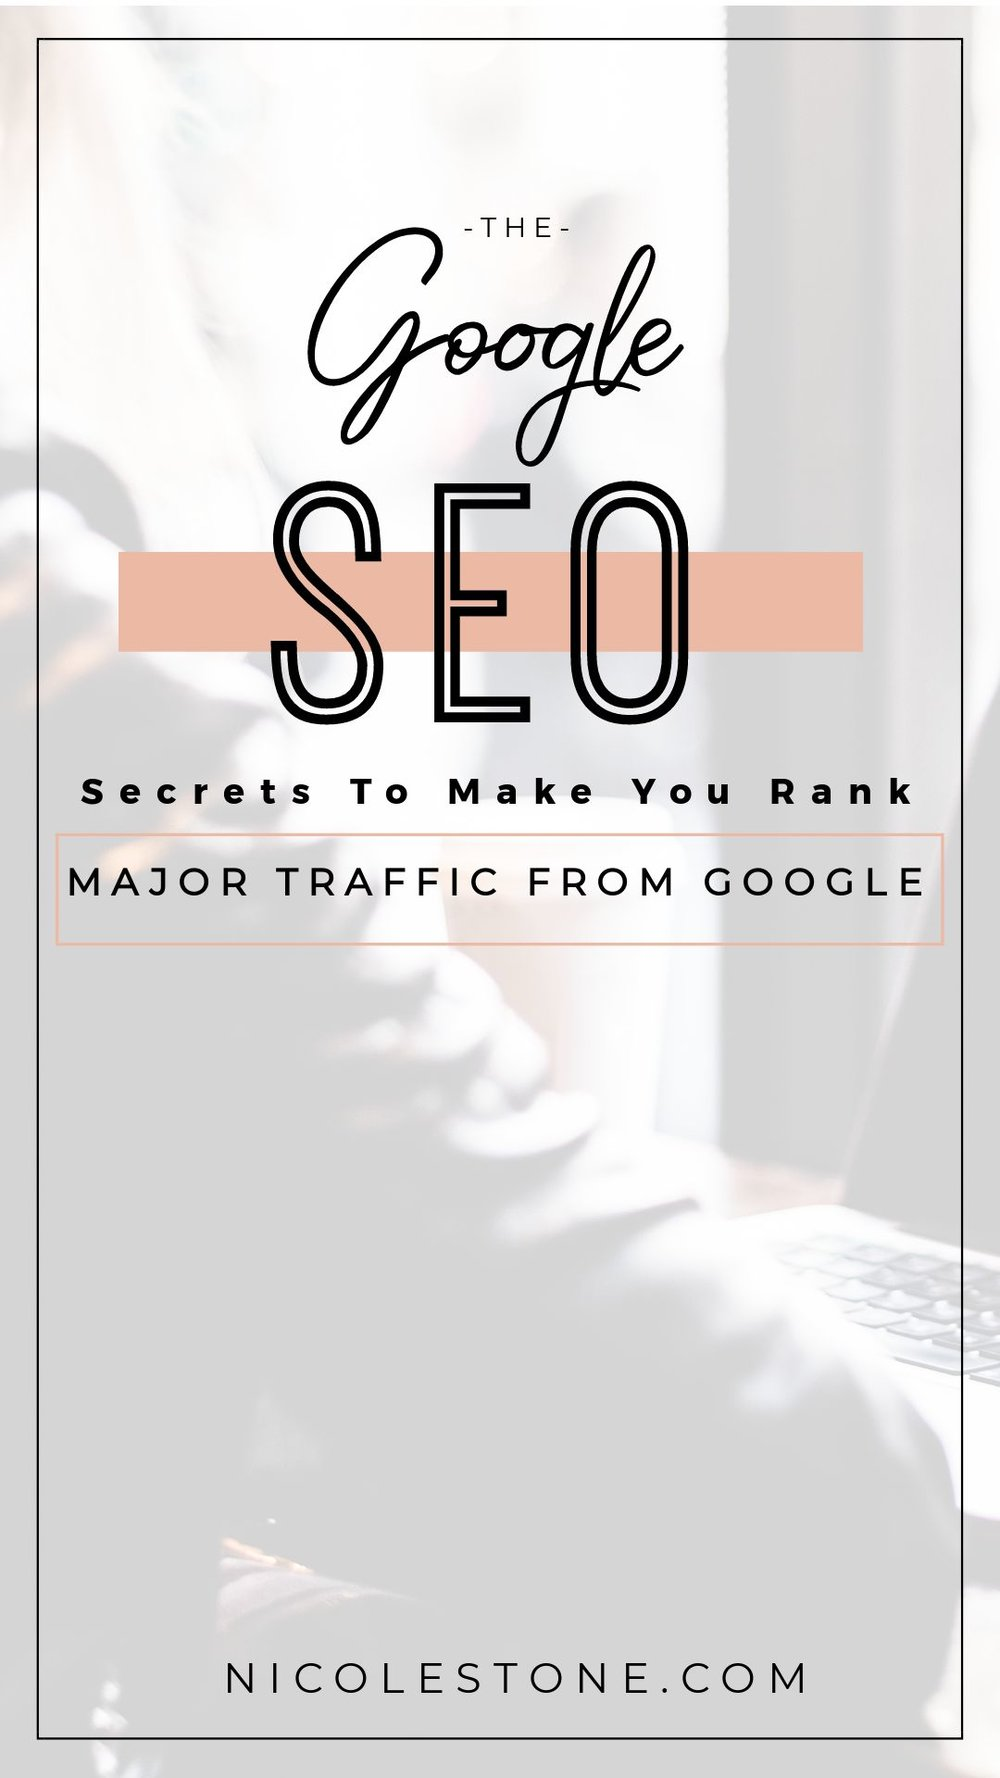 Google SEO secrets that will boost your organic traffic quickly! Learn how I get 20,000 pageviews a month from Google! #blogging #blog #seo #marketing